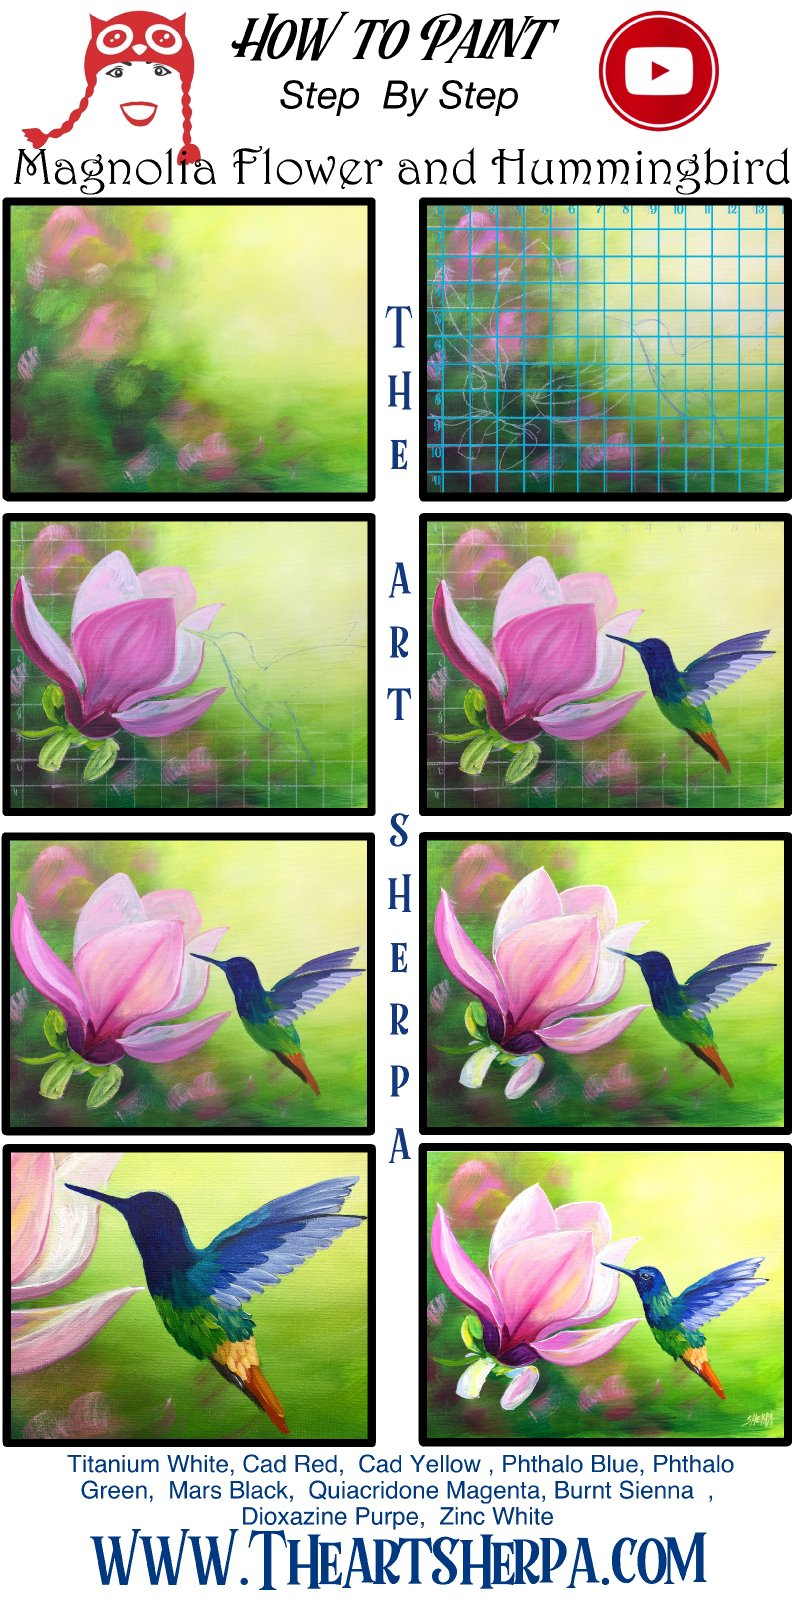 horizontal and Verticle Step by Step 2020 Hummingbird Magnolia Flower .jpg